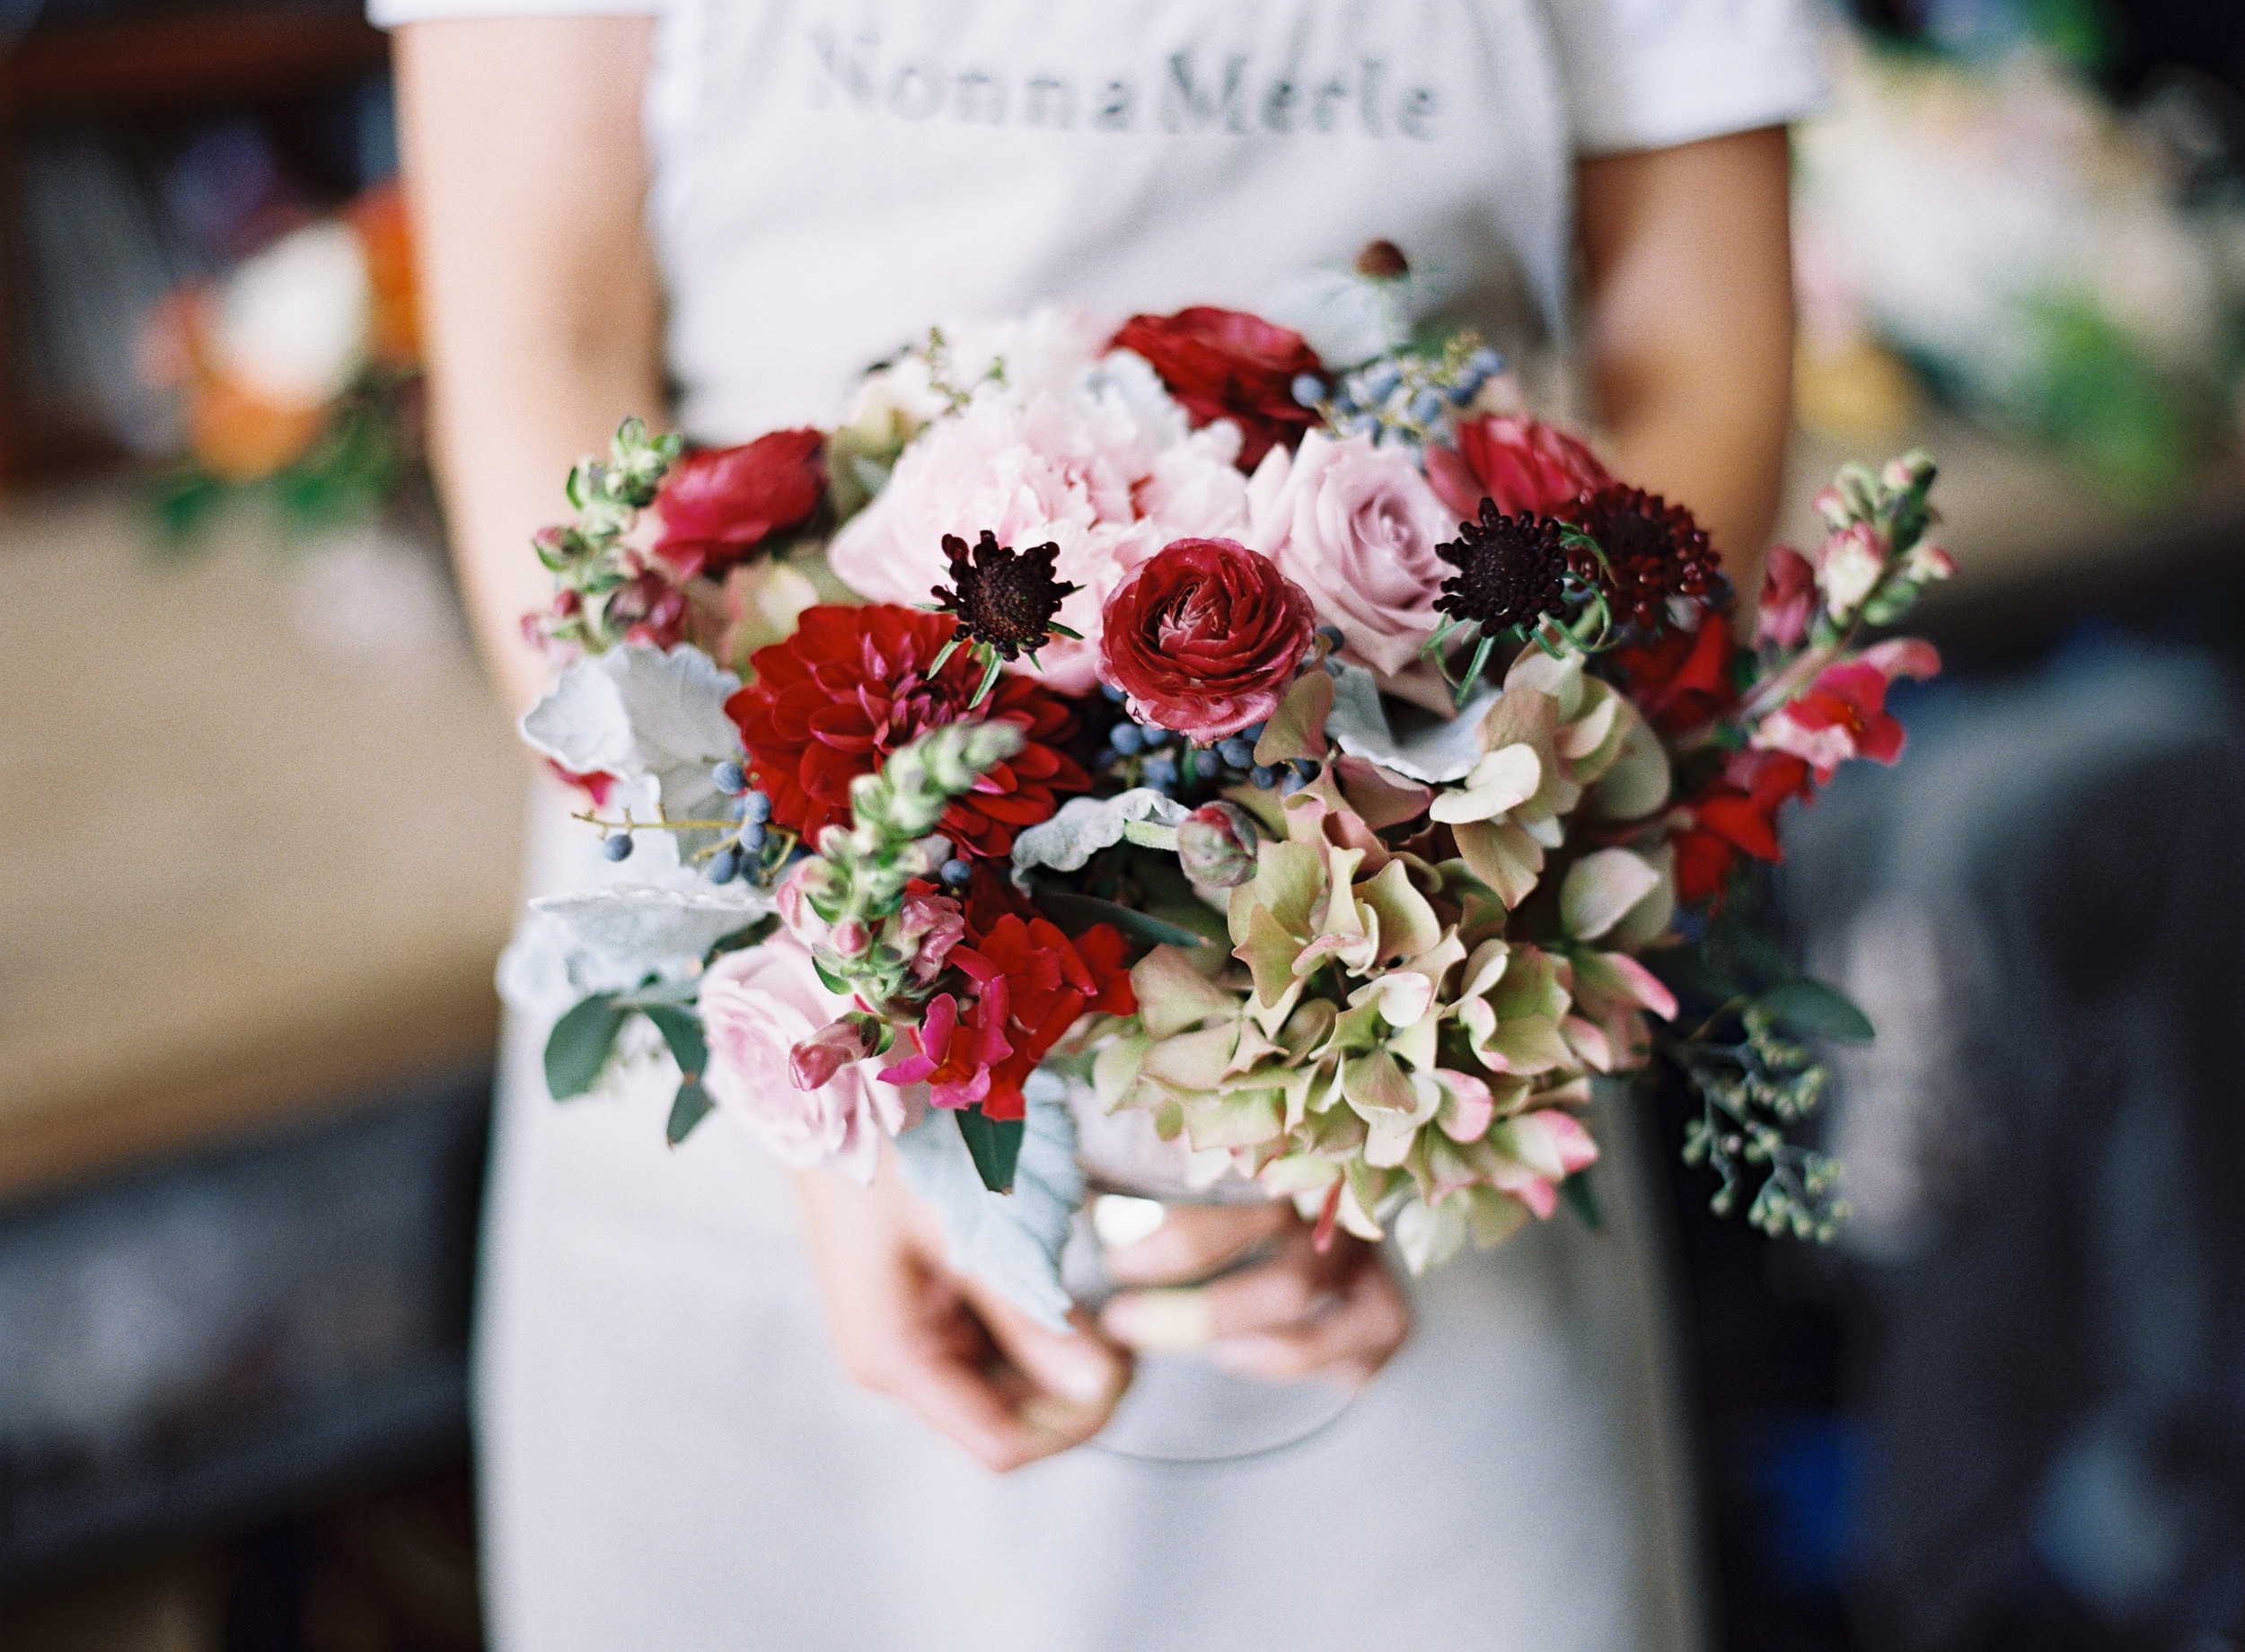 We are a floral design studio specializing in wedding and event floristry. We are located at   1 448 19th st  suite 102, Santa Monica, CA90401    310-592-3588         { By appointment only }    info@theflowerlab.com